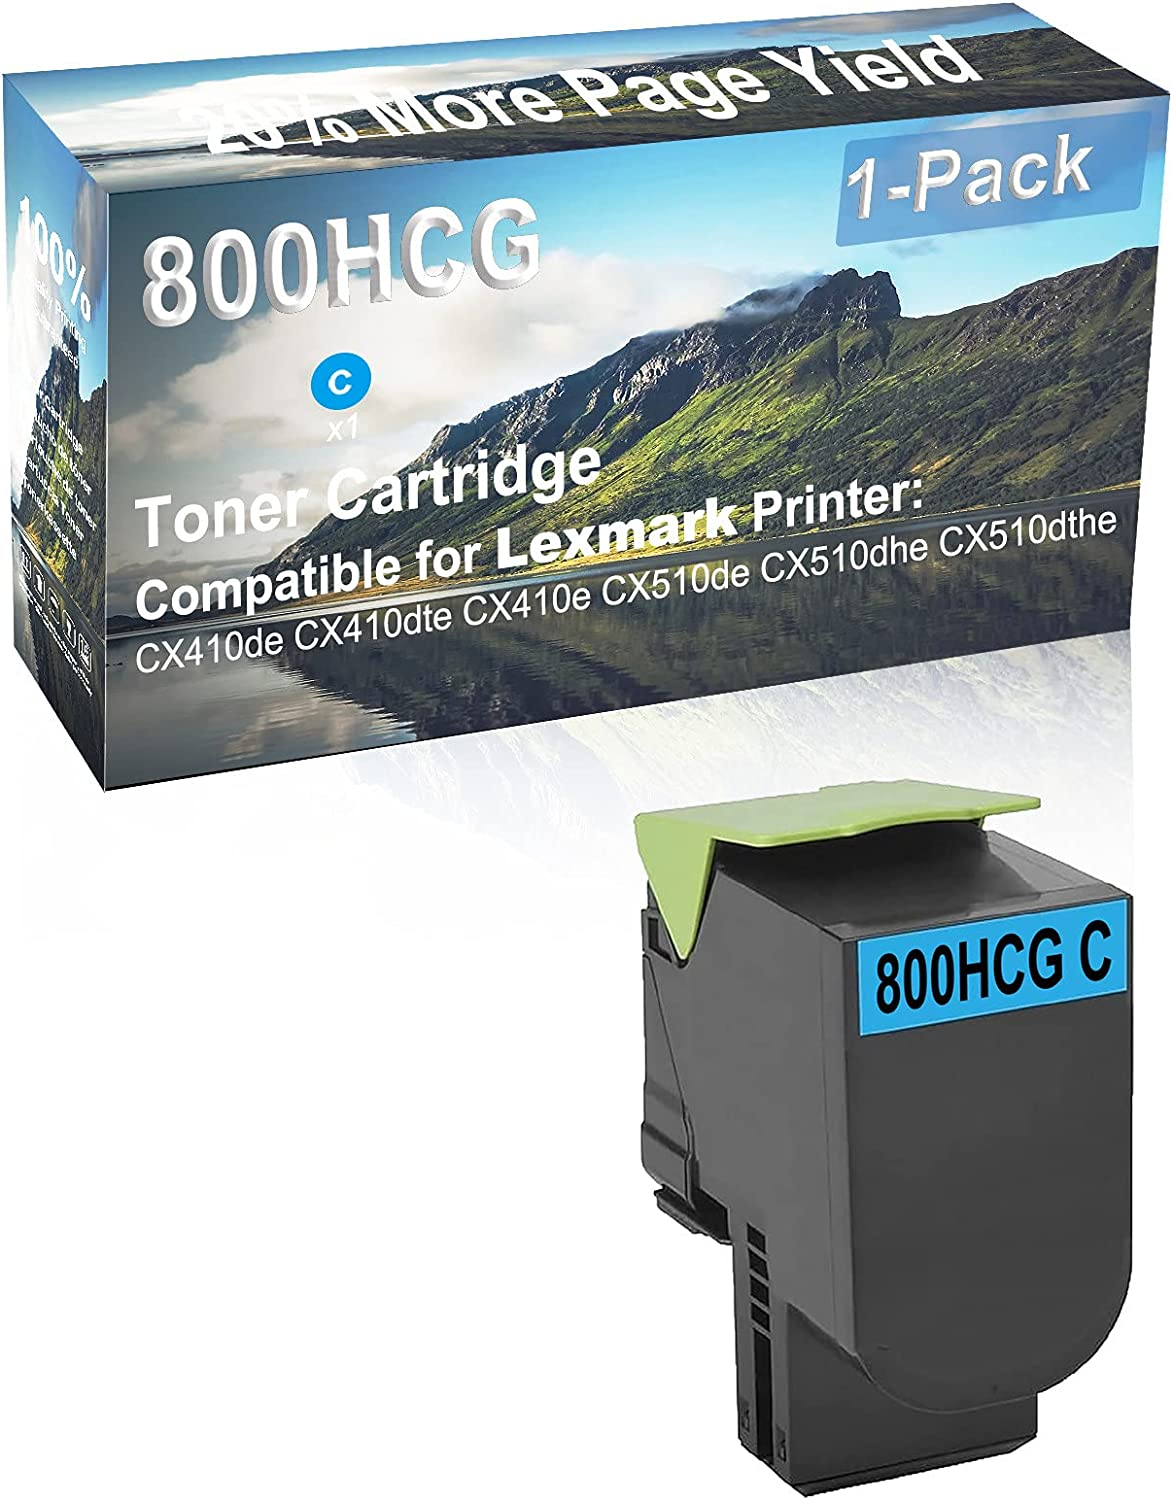 1-Pack (Cyan) Compatible High Capacity 800HCG Toner Cartridge Used for Lexmark CX410de, CX410dte Printer